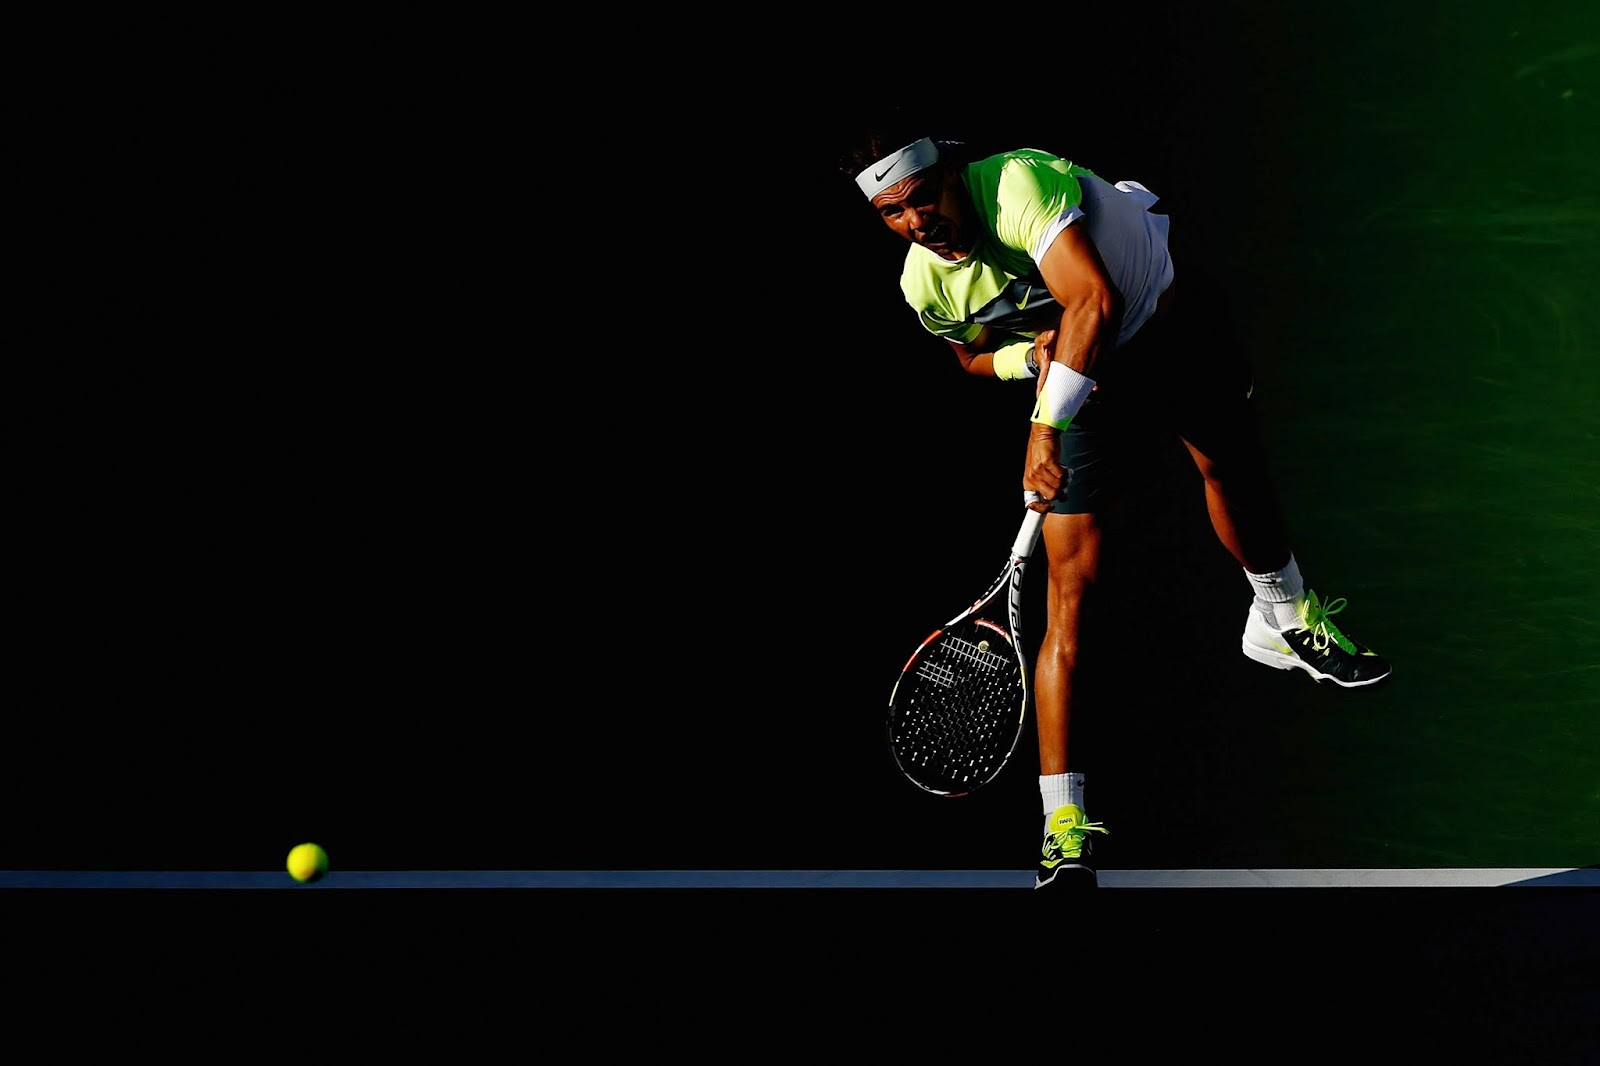 Julian Finney/Getty Images